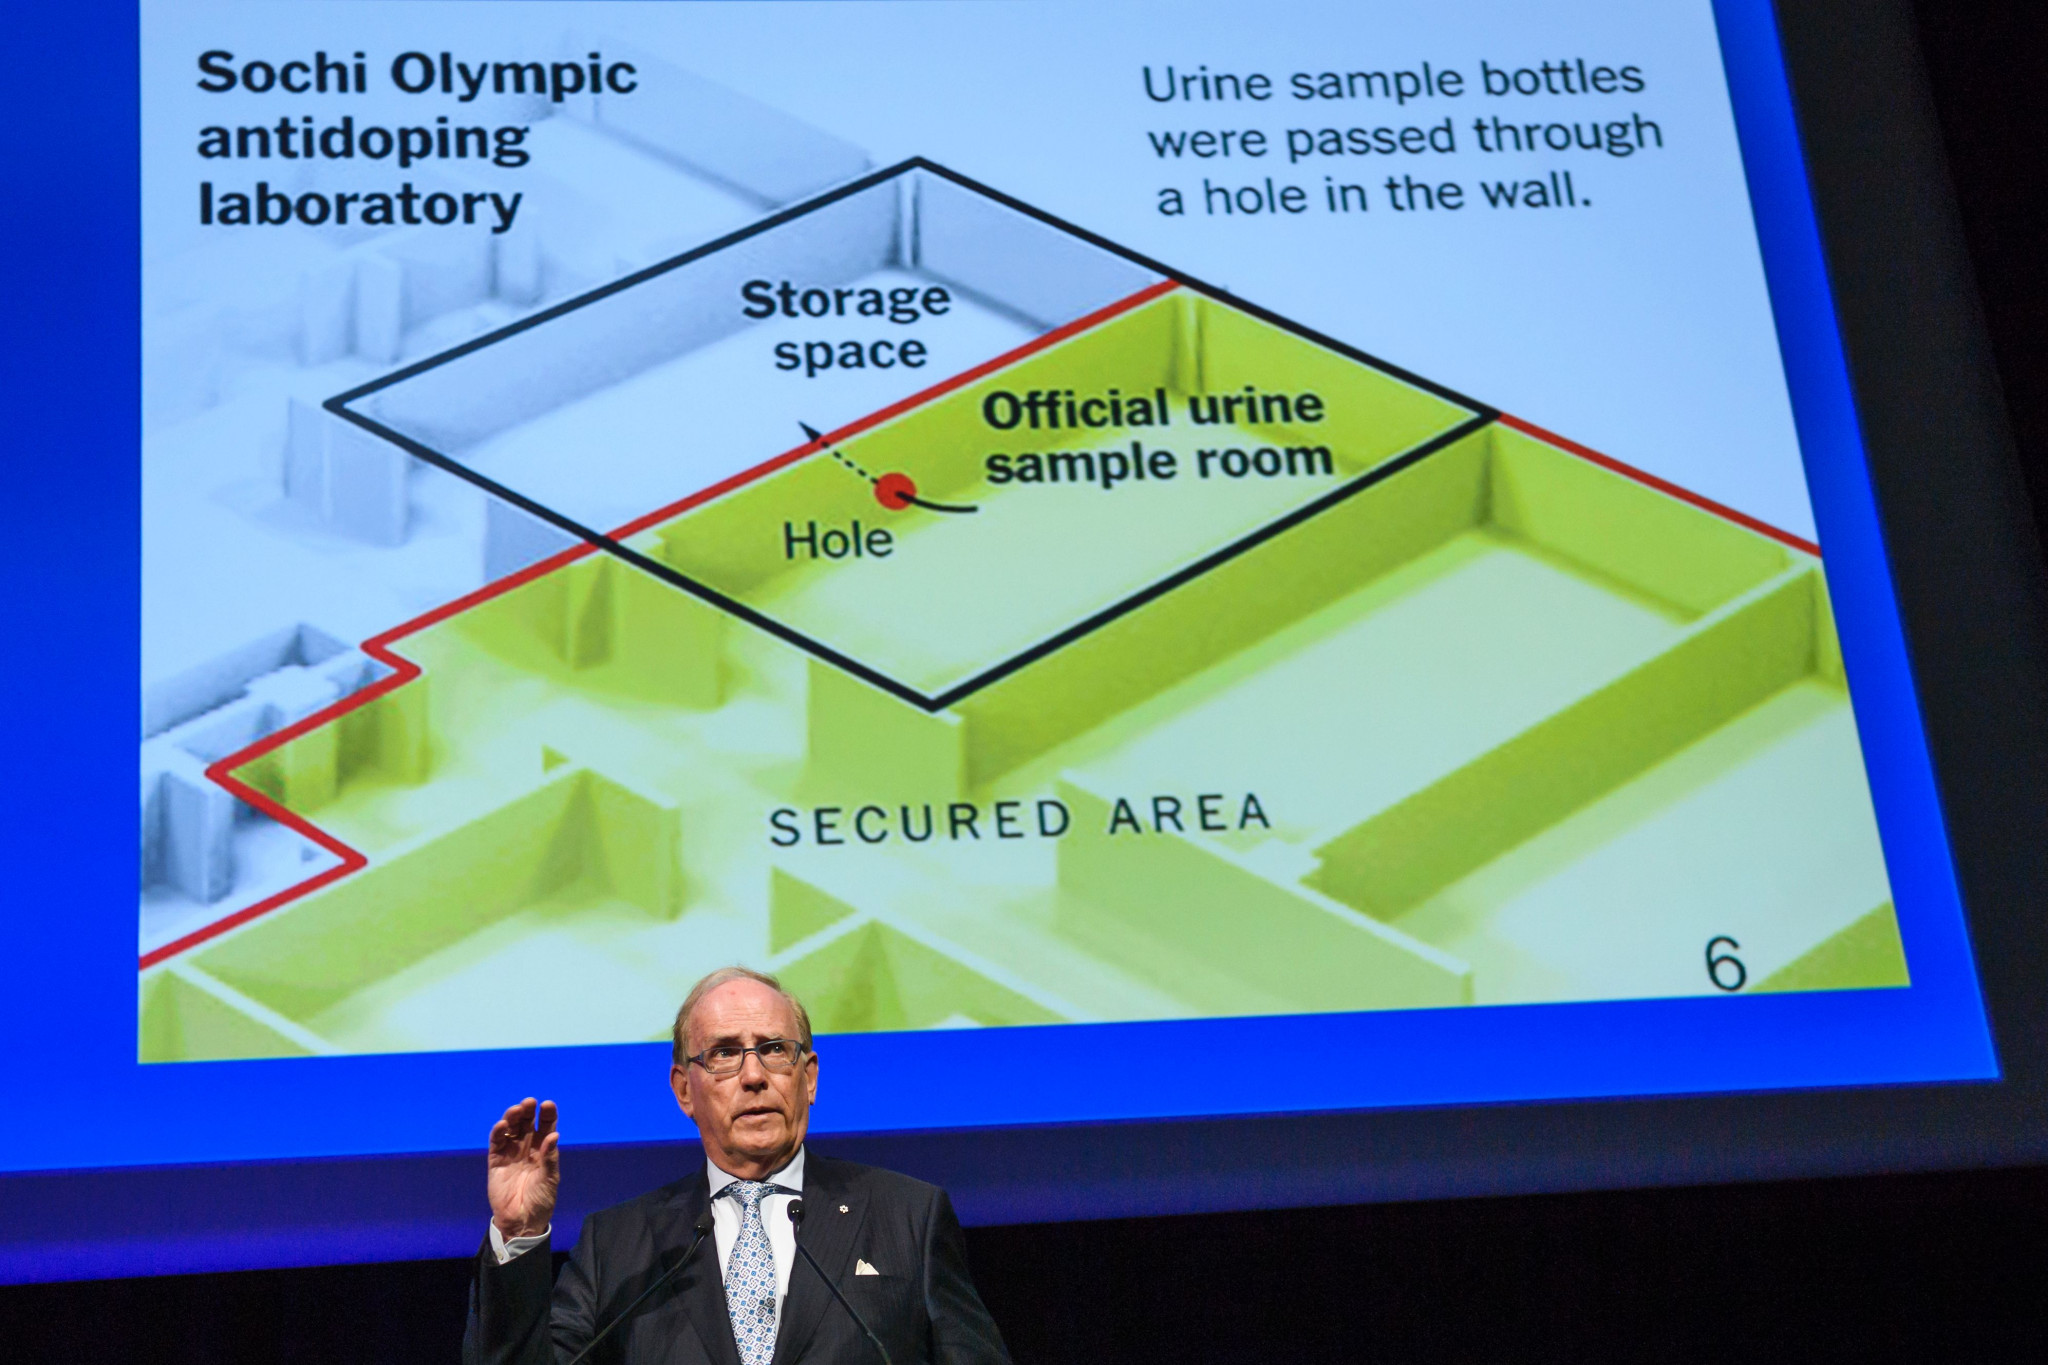 Samples from Russian athletes have already been reanalysed following the Sochi 2014 doping scandal ©Getty Images